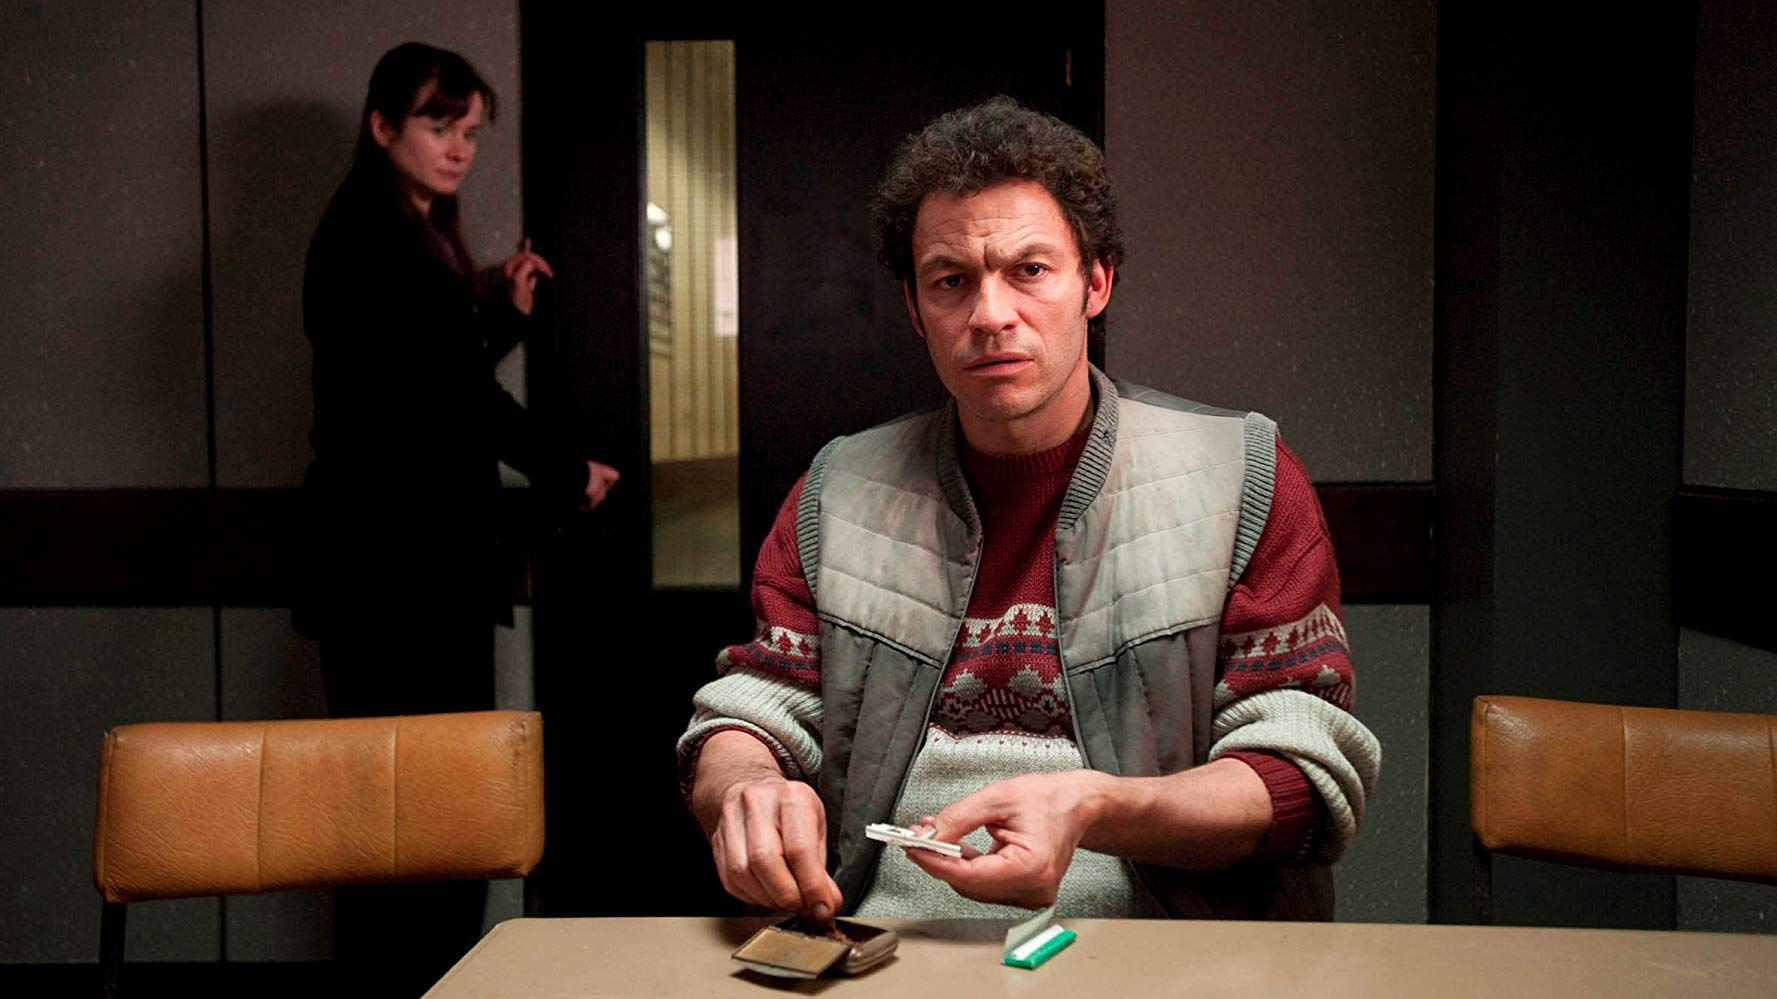 Dominic West as serial killer Fred West with Emily Watson in the background in Appropriate Adult (2011)